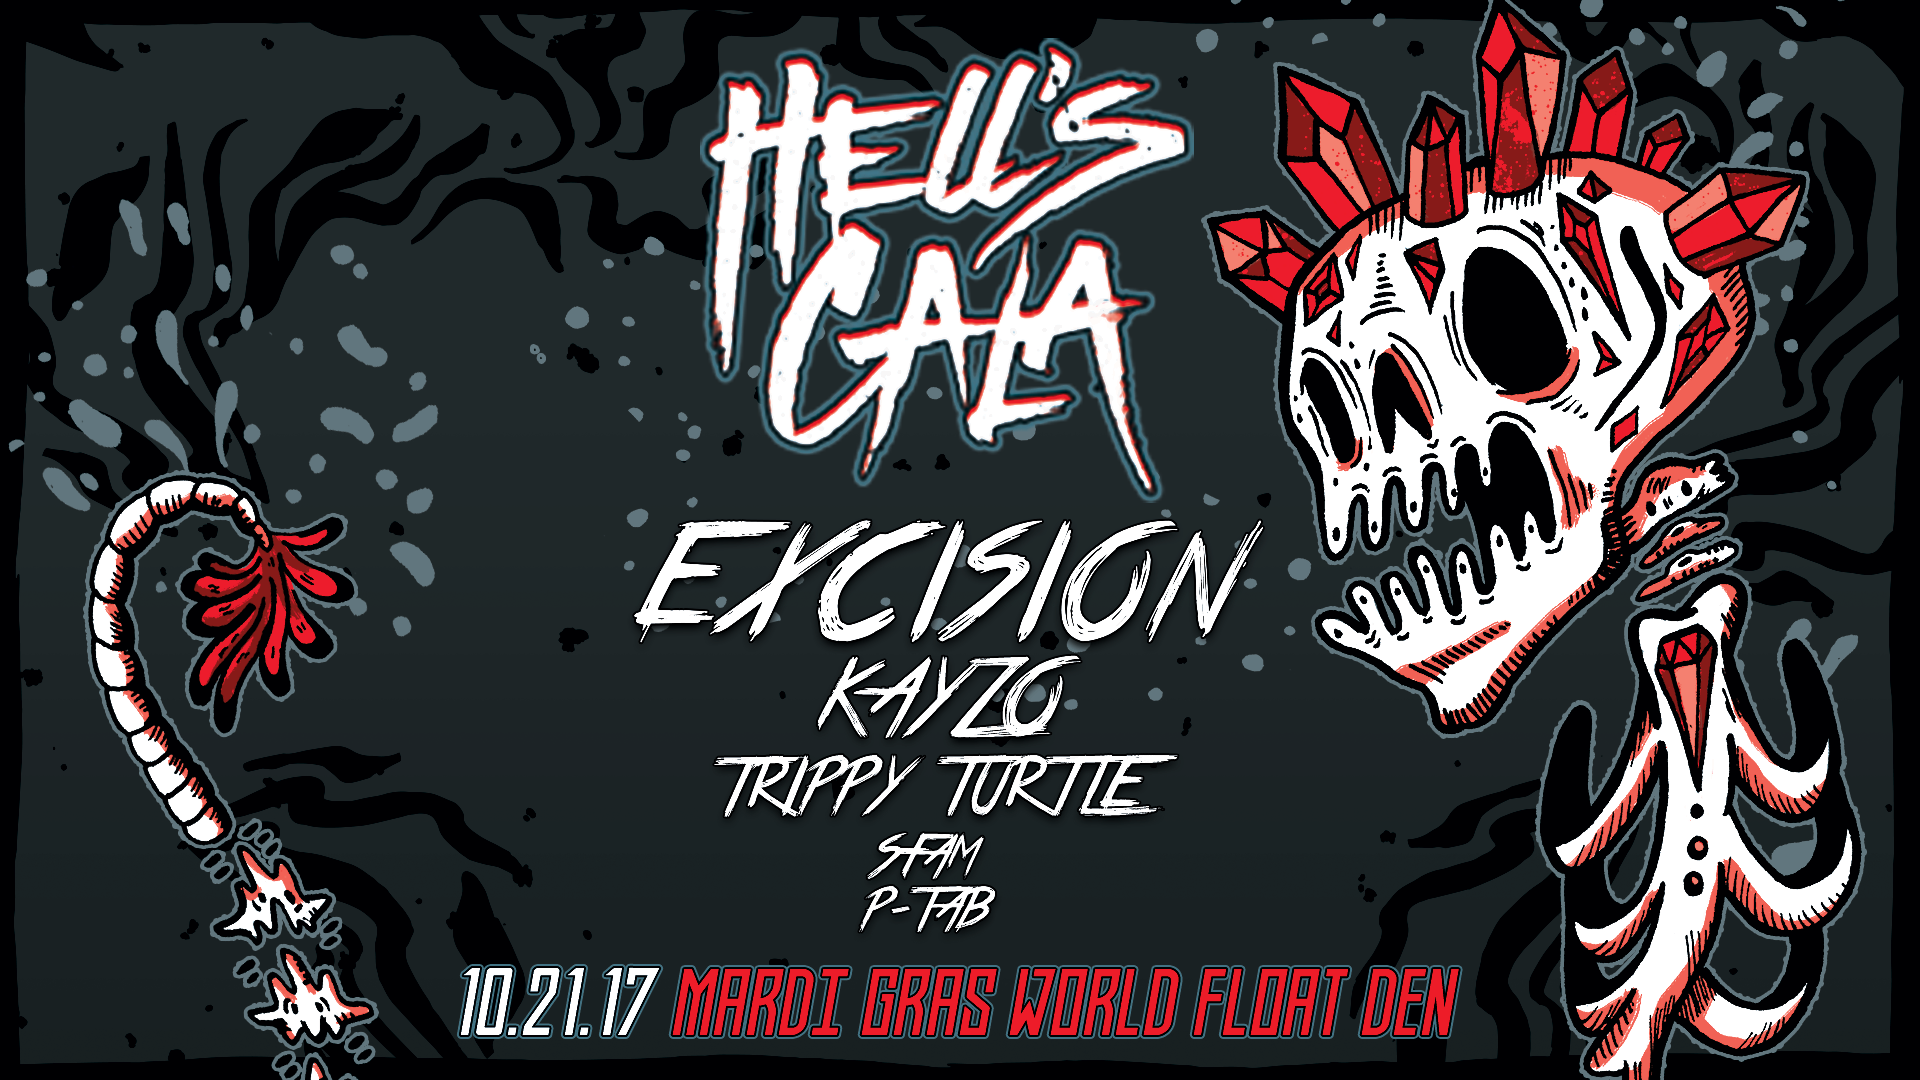 To Hell and Back: Bassheads Unite at Hell's Gala and Afterparty This Saturday, October 21